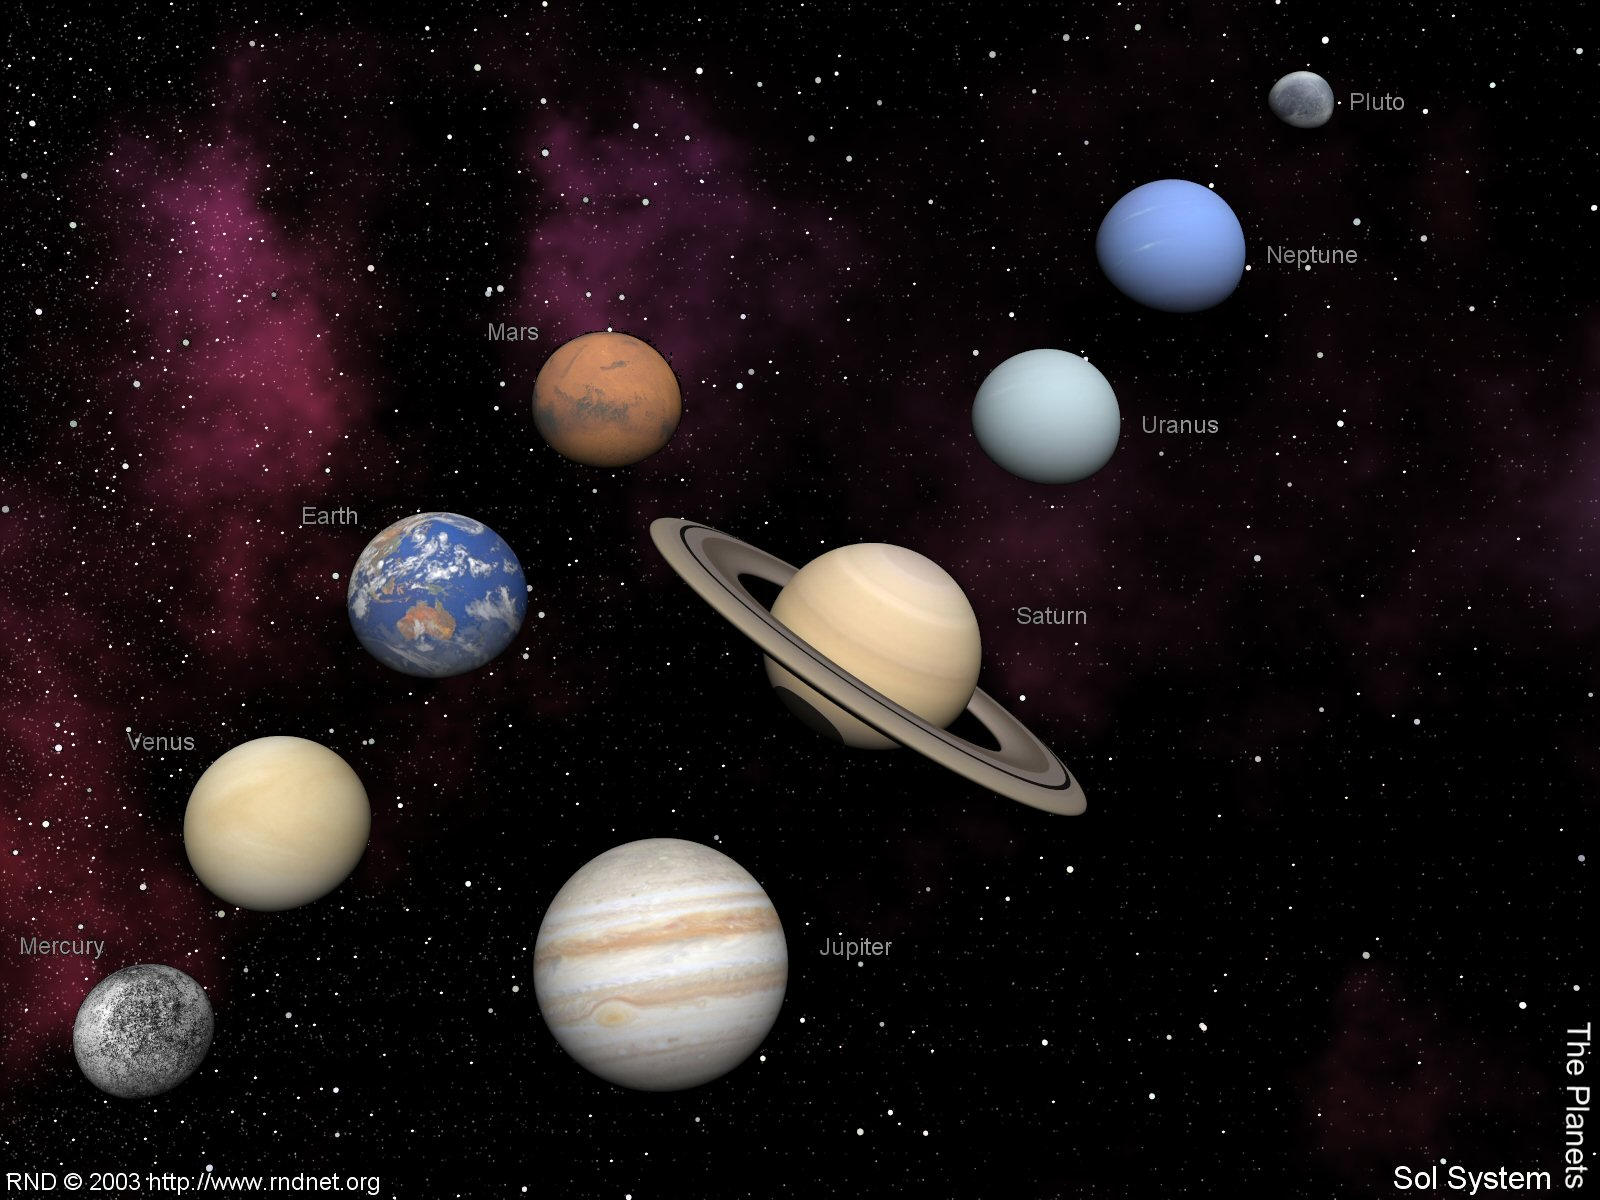 Solar System The Planets by swarfega on DeviantArt